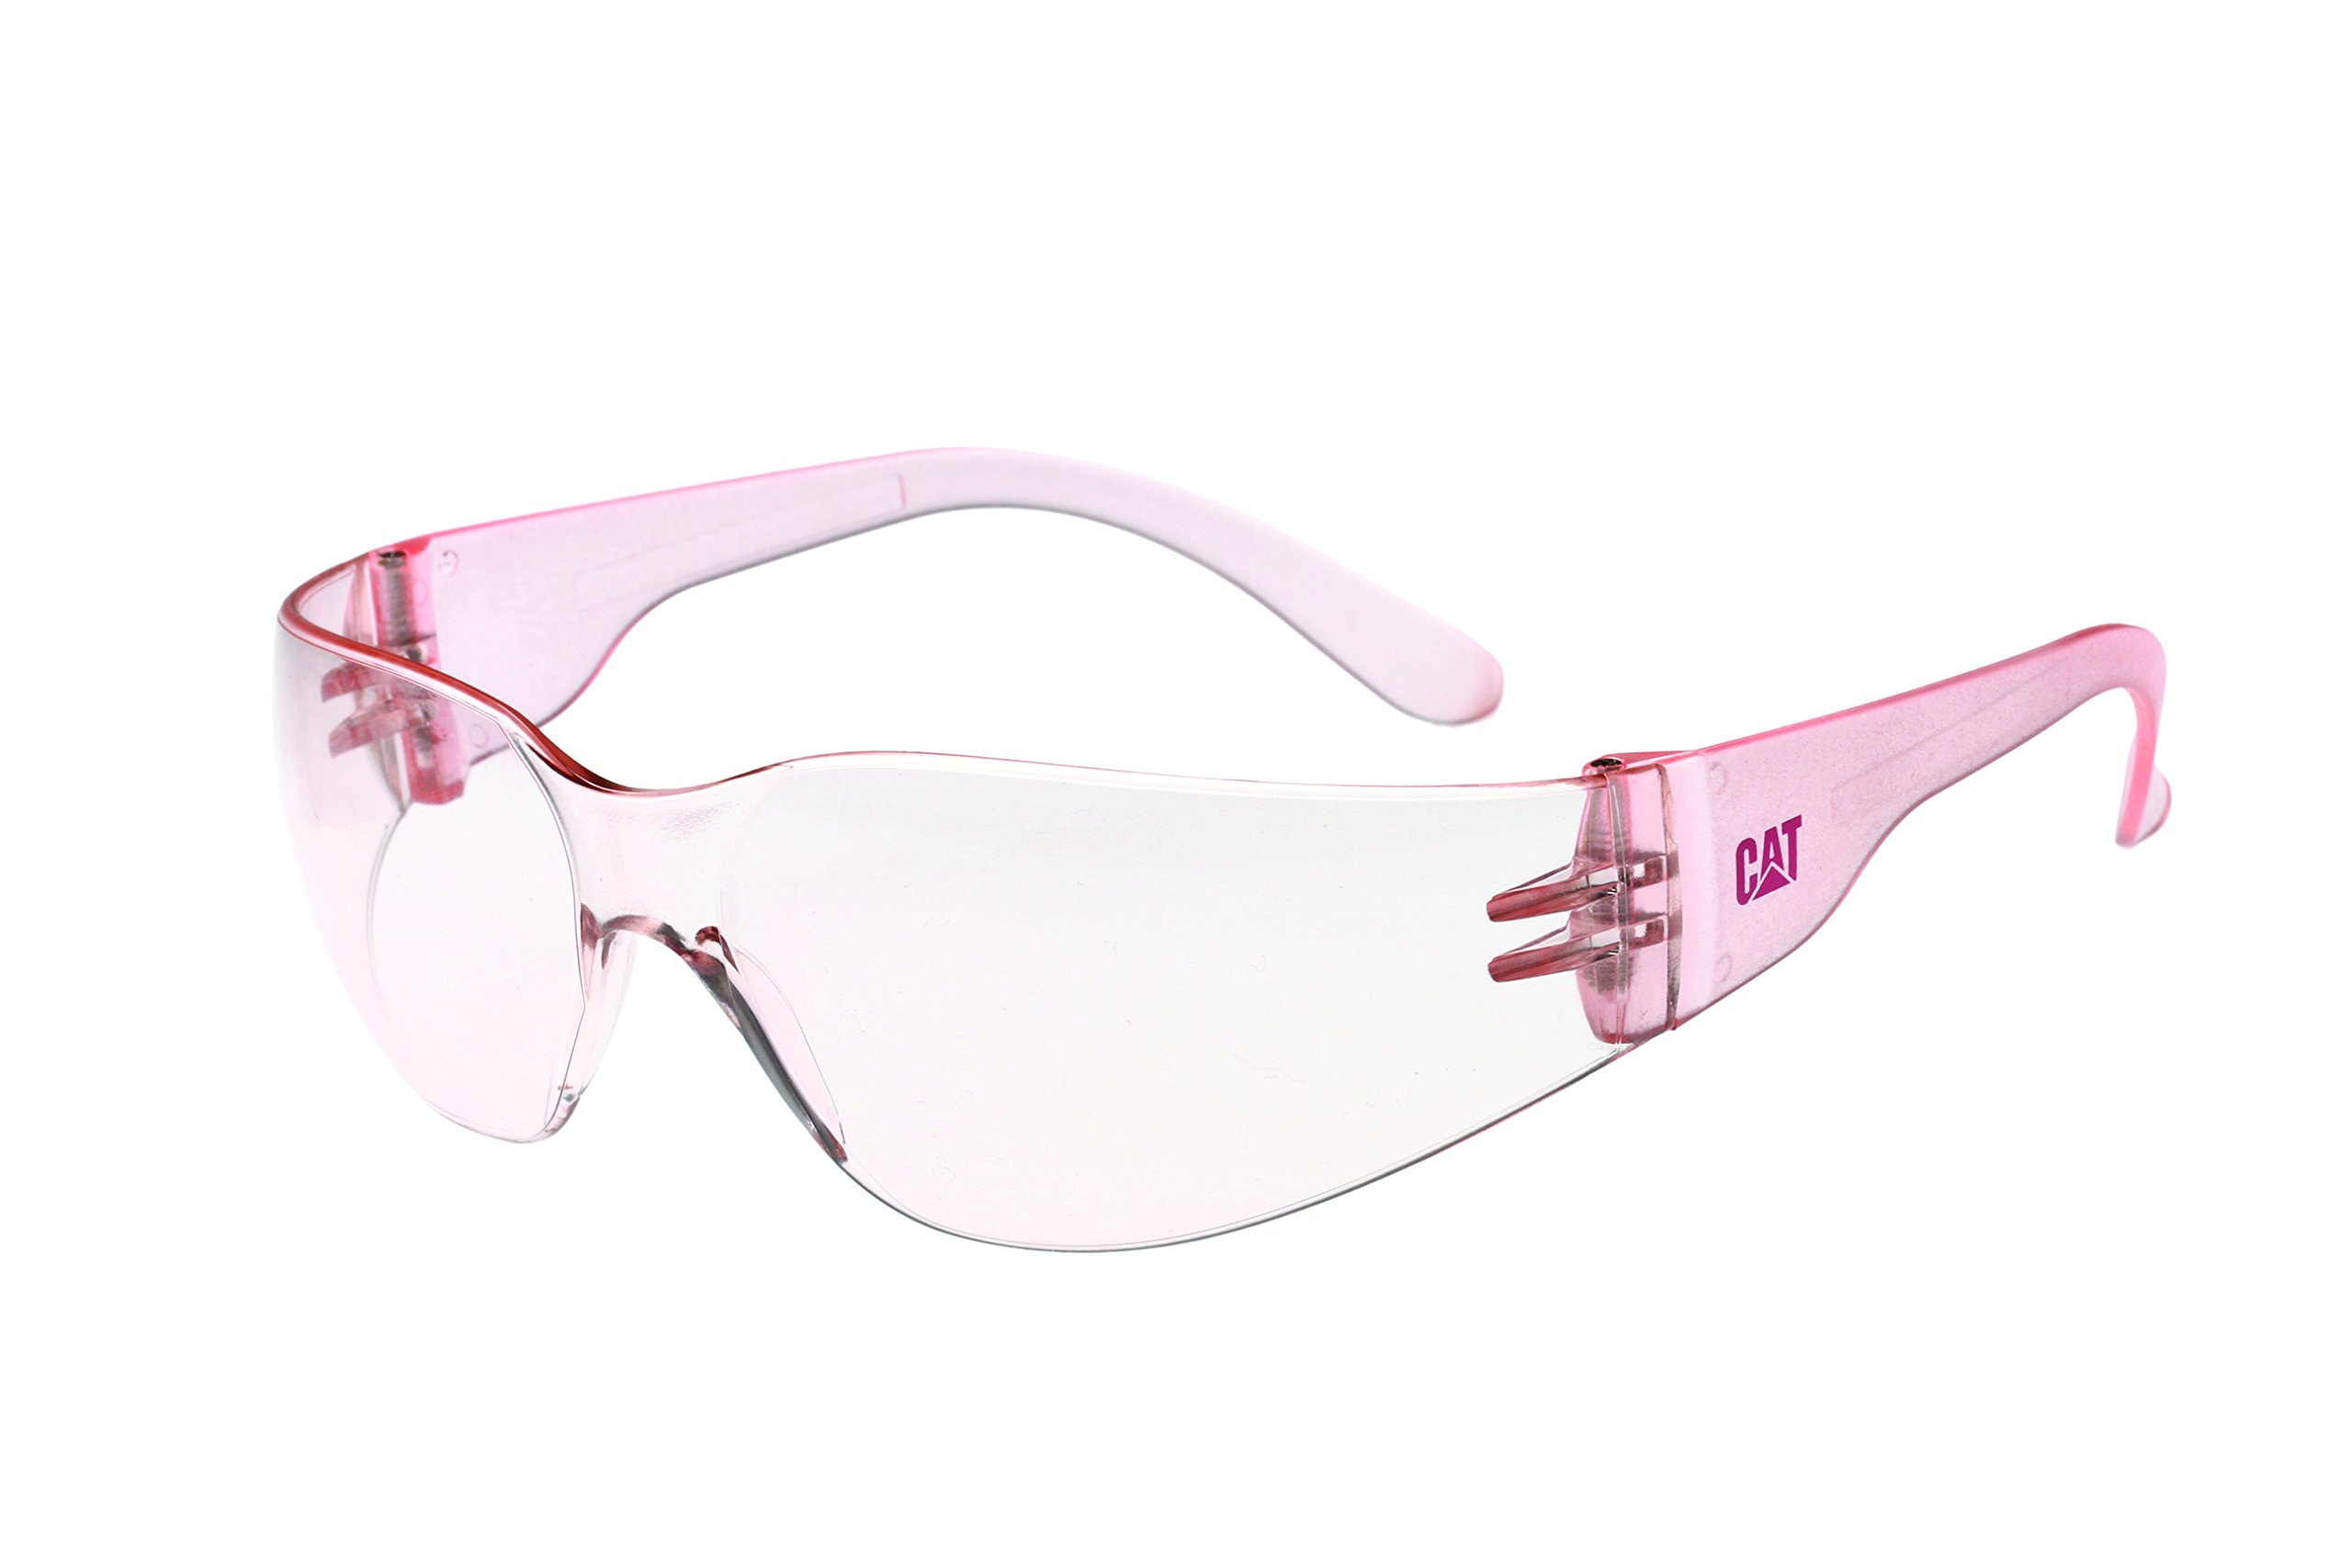 Caterpillar CSA-JET-172 Filter Category 2-1.2 Pink Lens Safety Glasses, Small